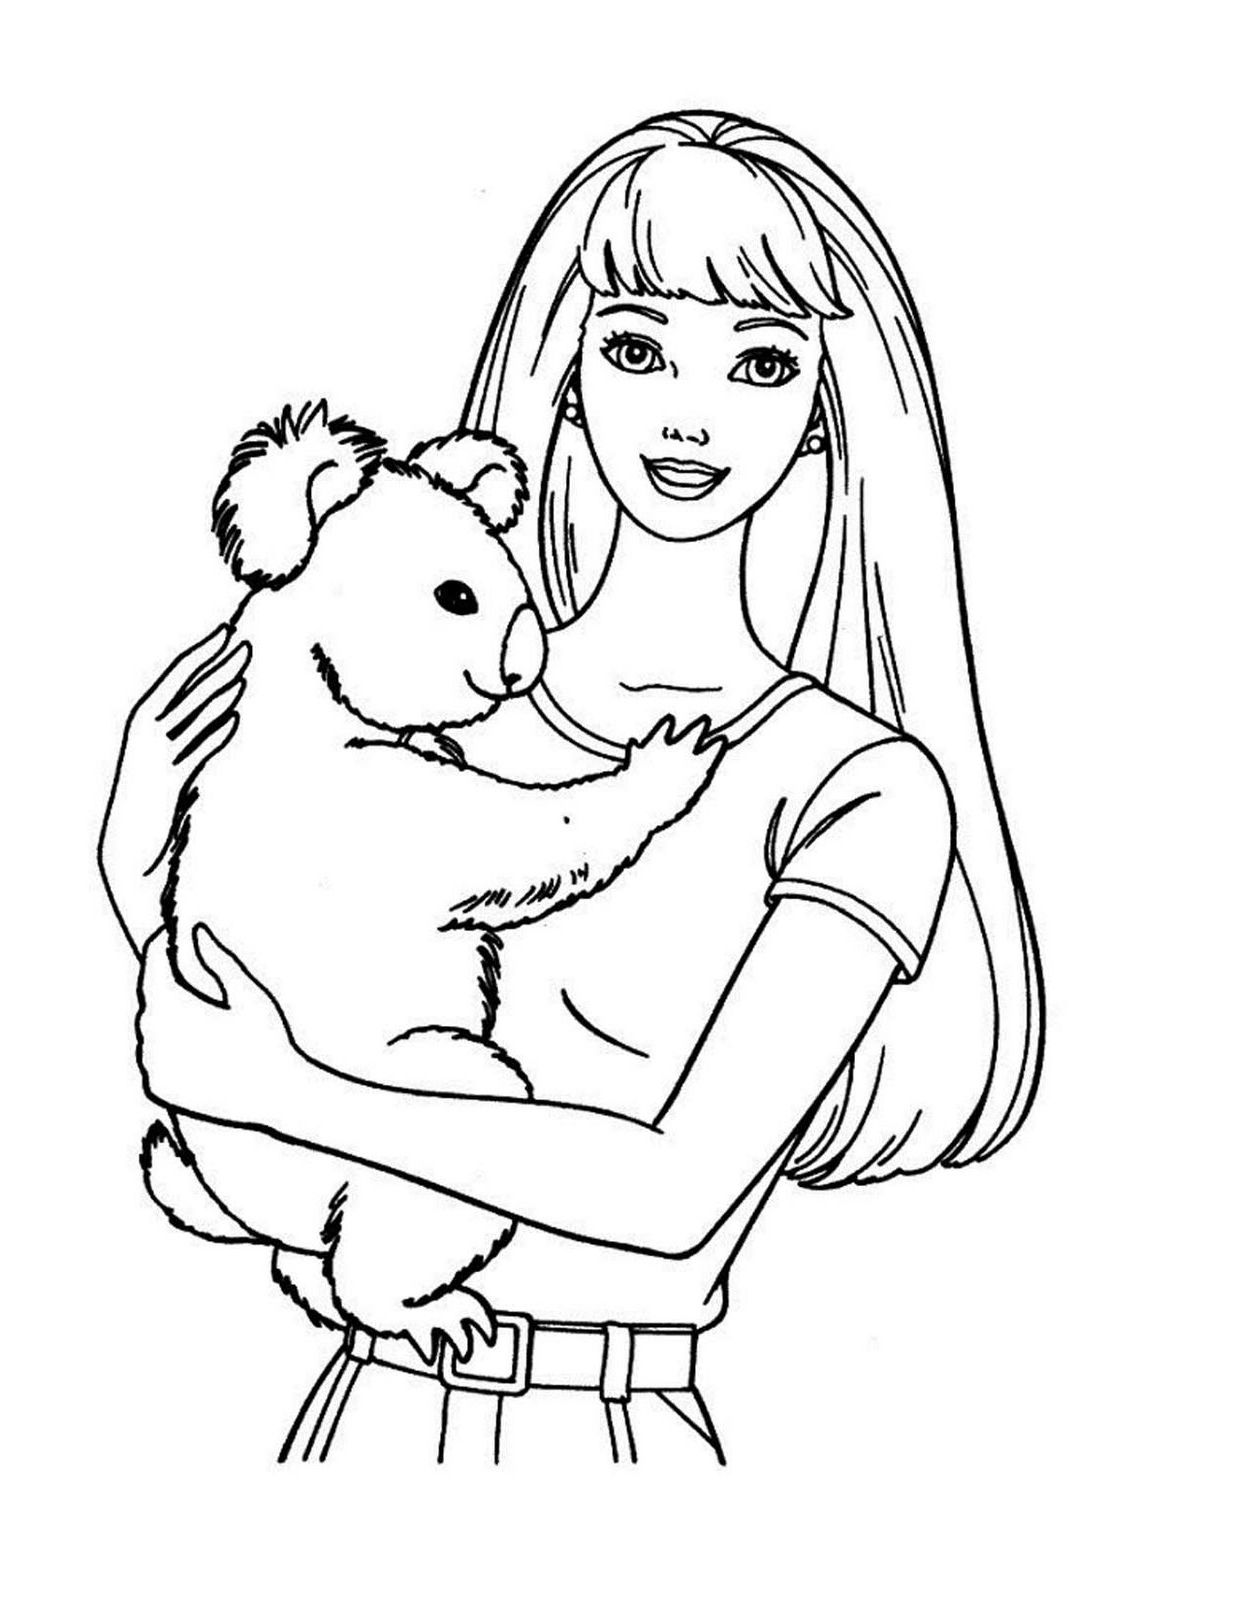 Barbie colouring in online free - Barbie Coloring Pages Printable Sheet Coloring Pages To Print